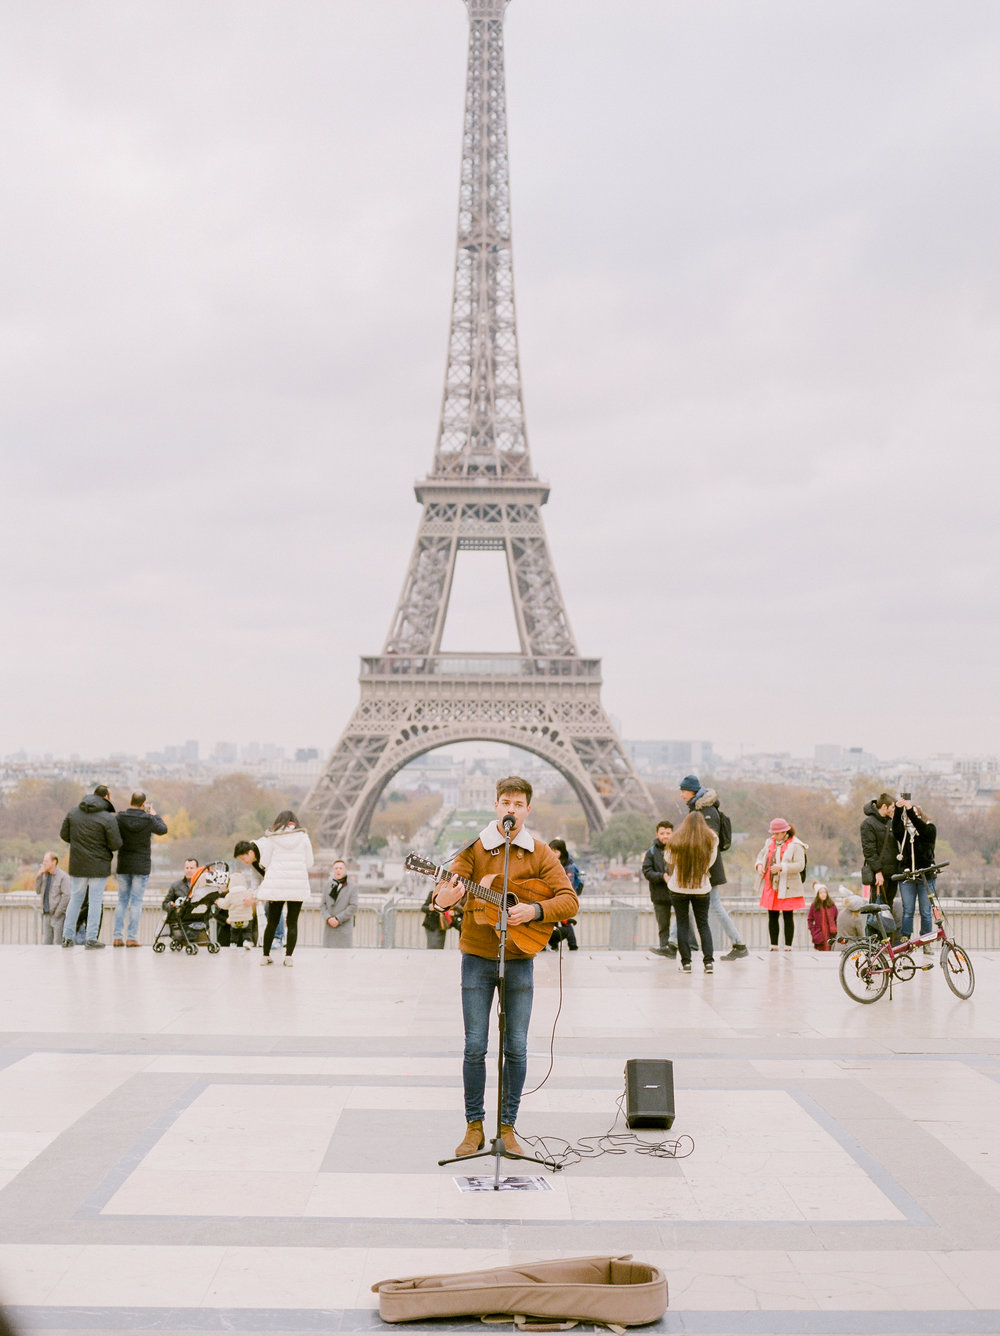 musician-plays-in-front-of-effle-tower.jpg